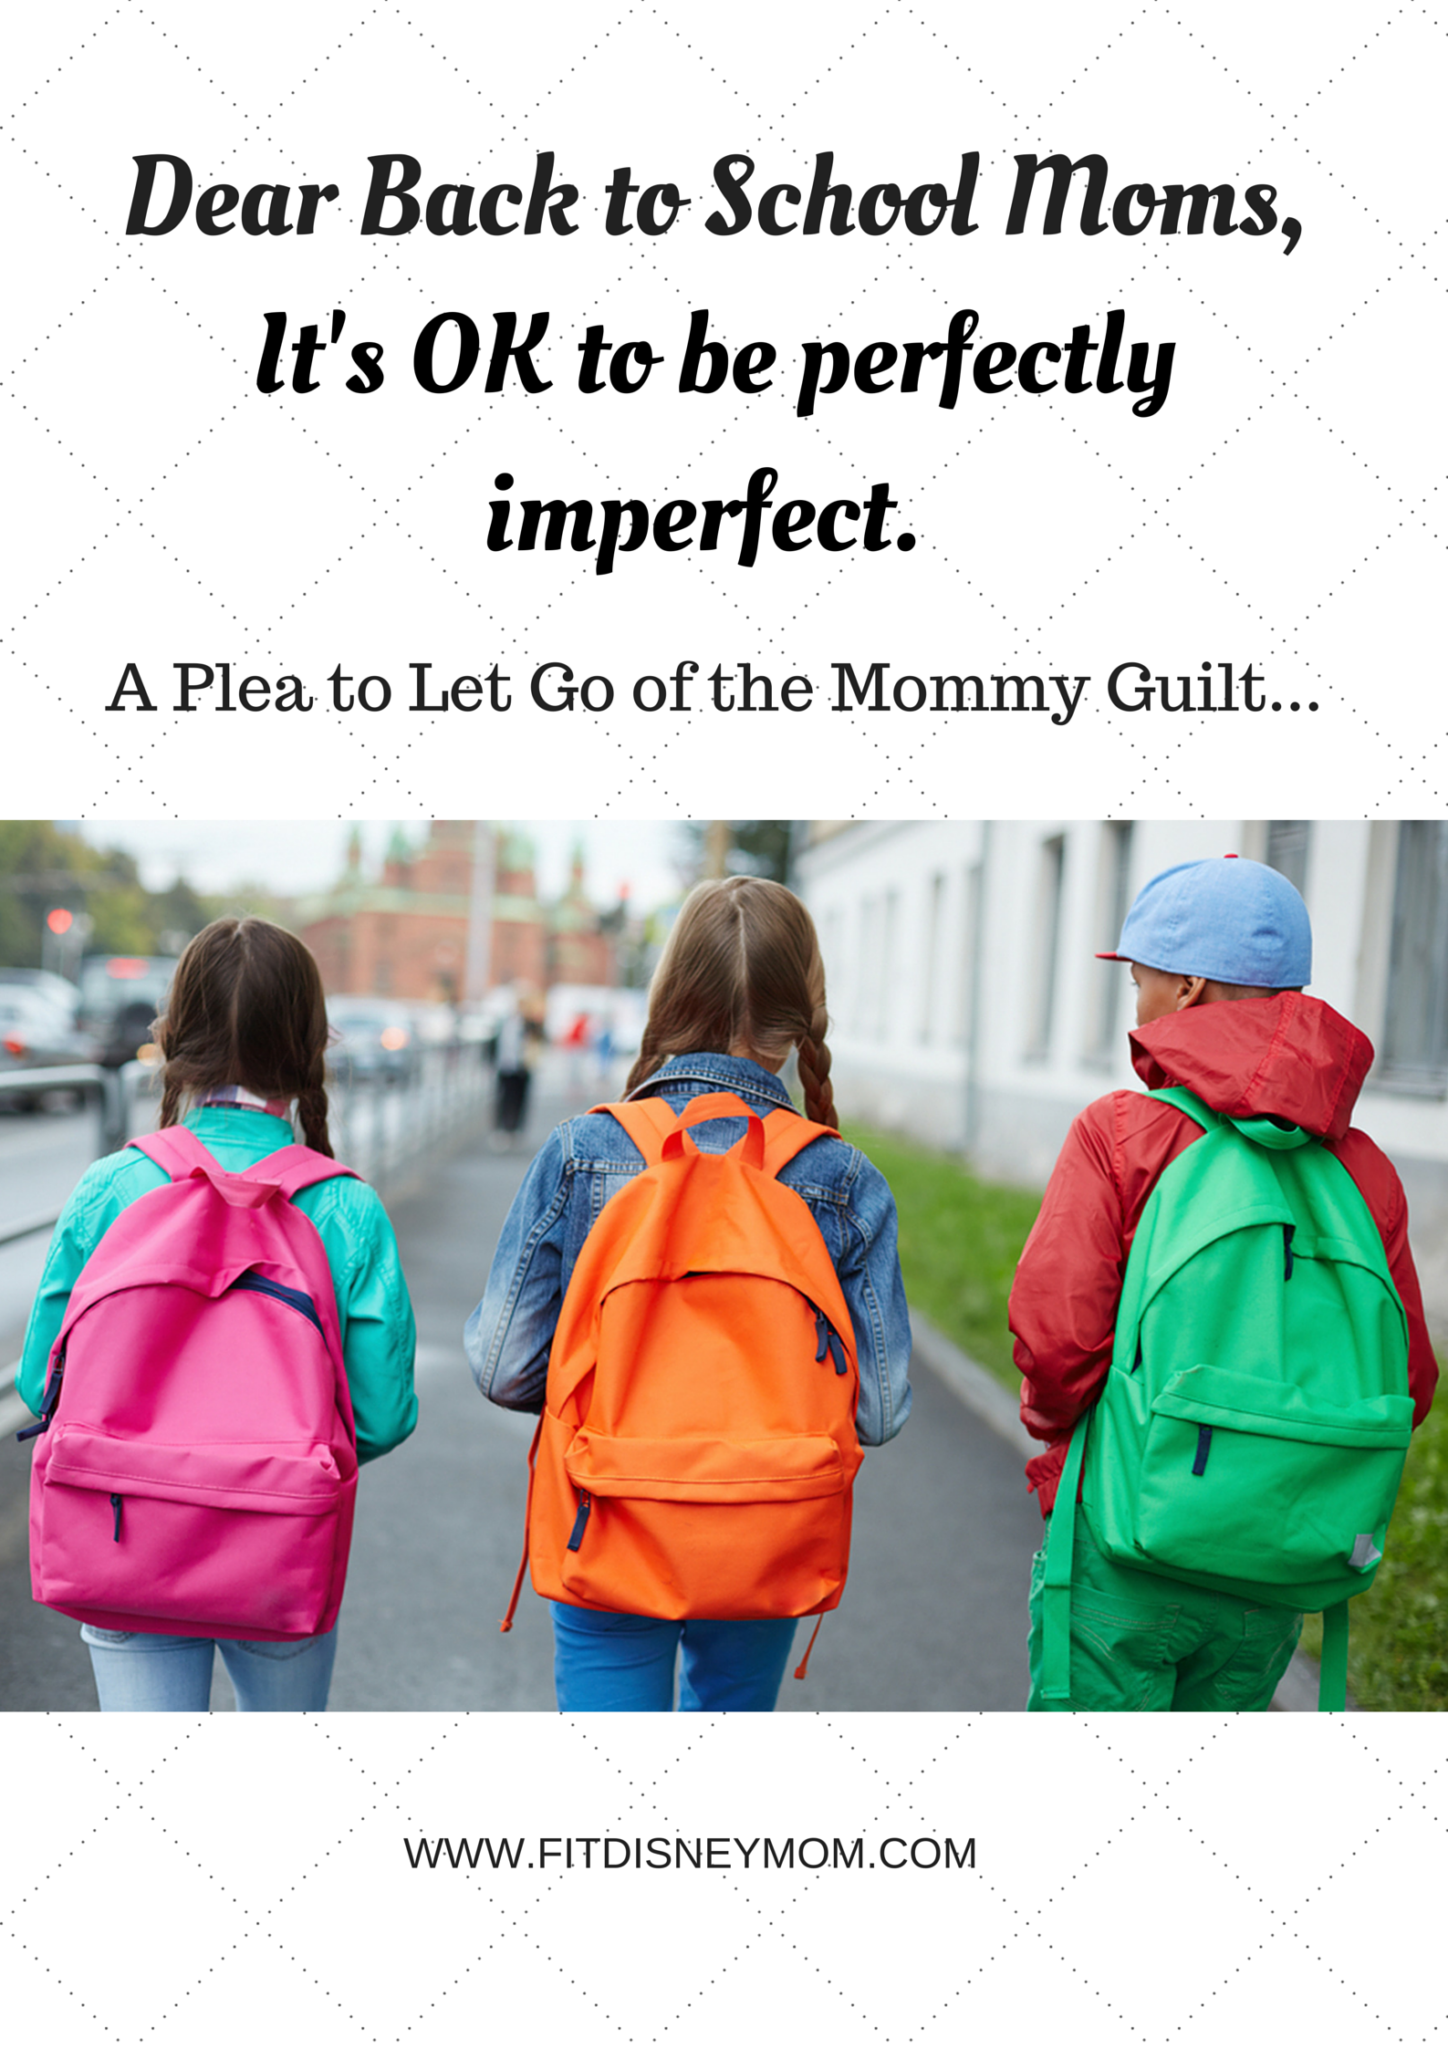 Dear Back to School Moms,It's OK to be perfectly imperfect.